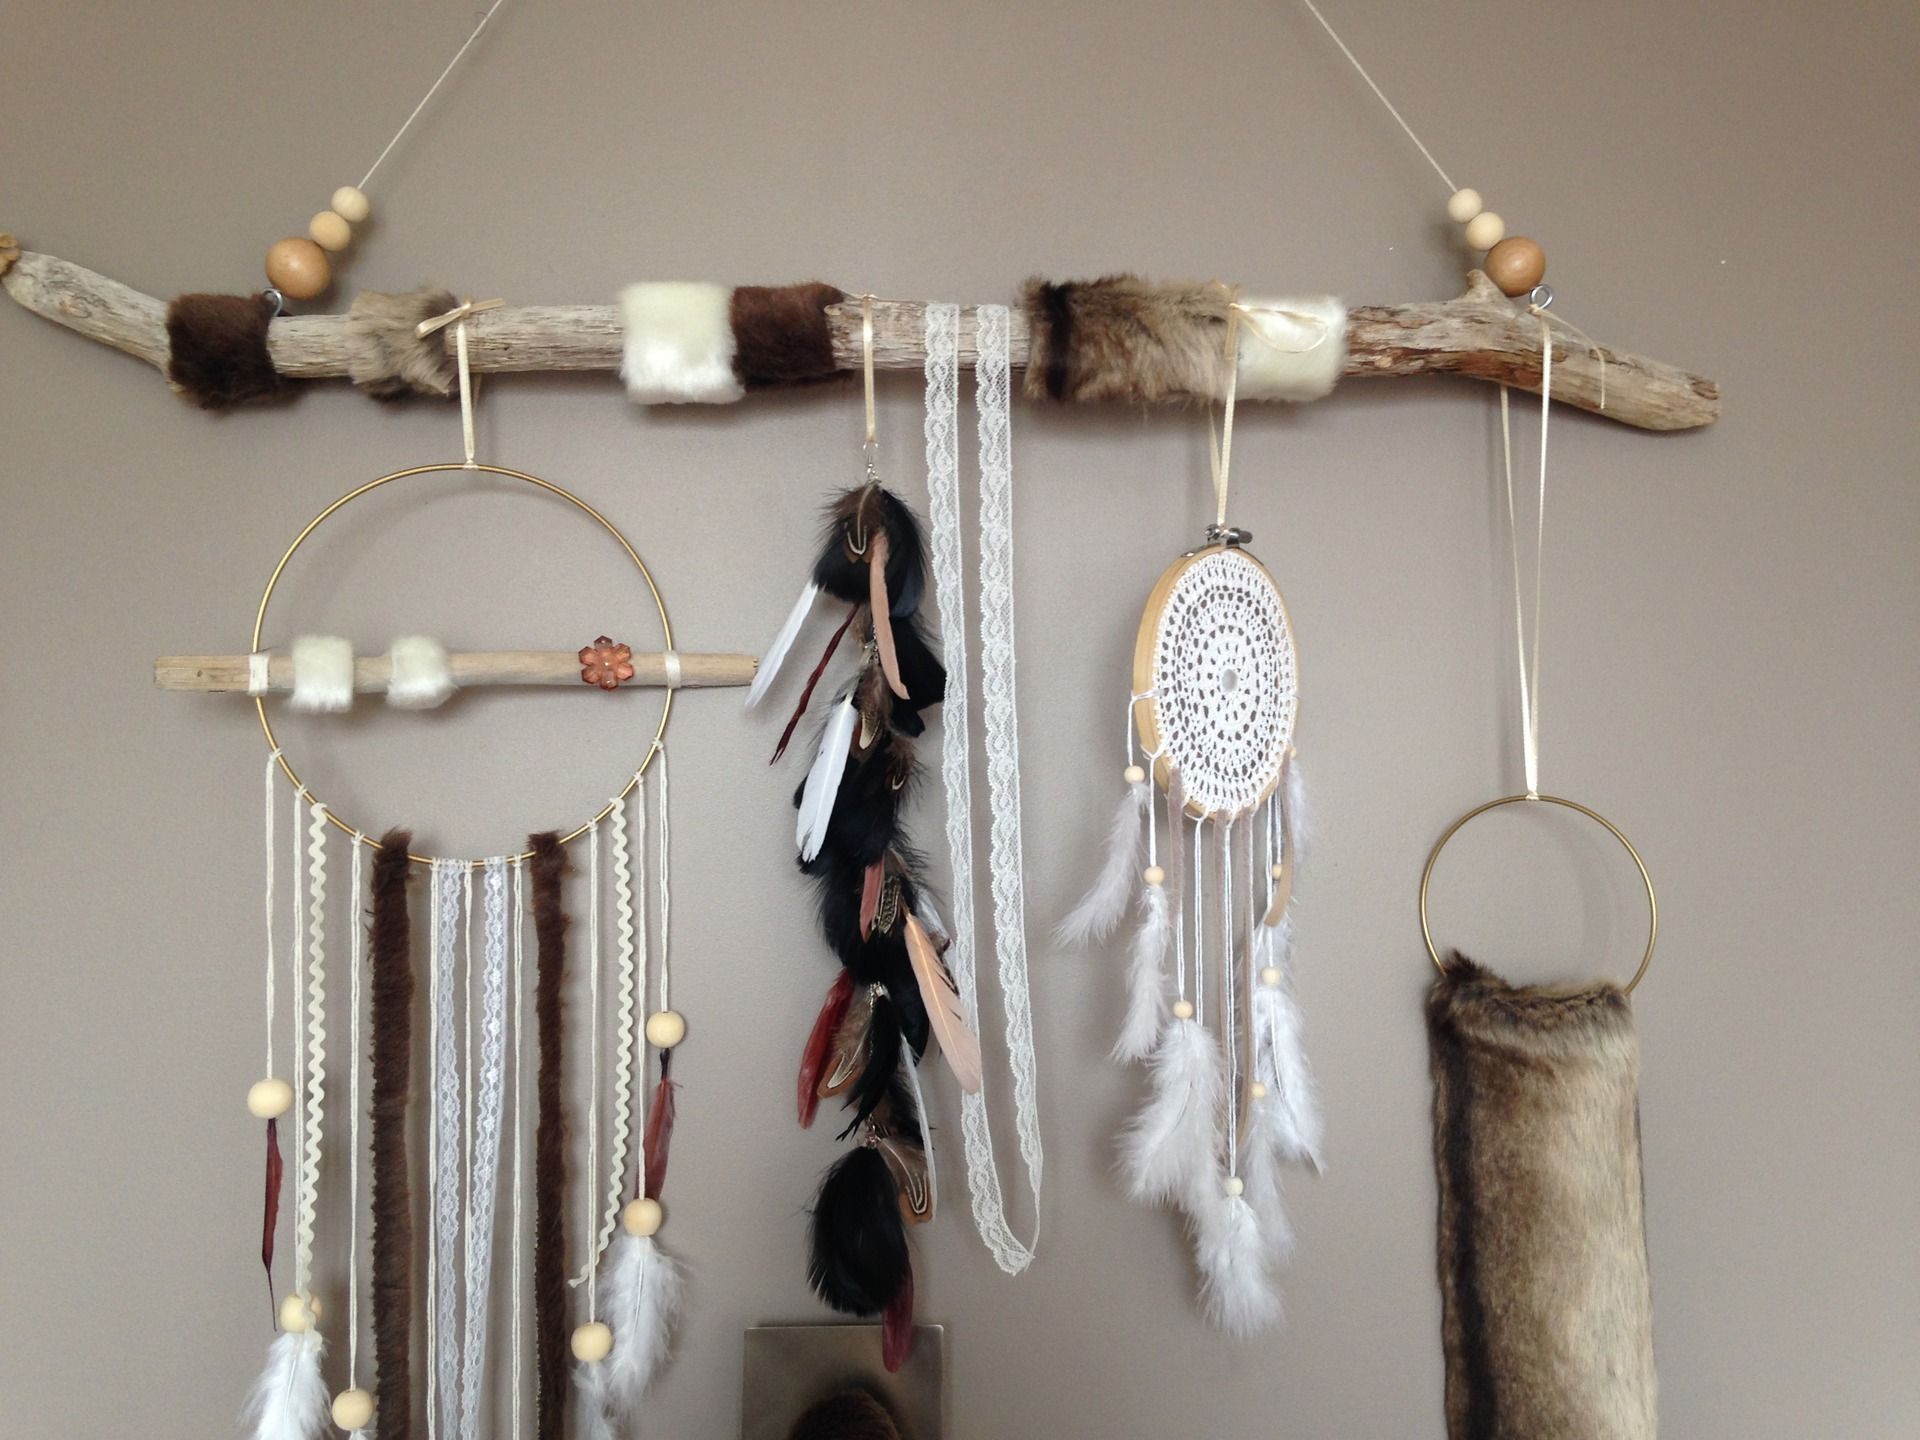 Attrape r ves dreamcatcher attrapeur de r ves en bois for Decoration bois flotte aquarium